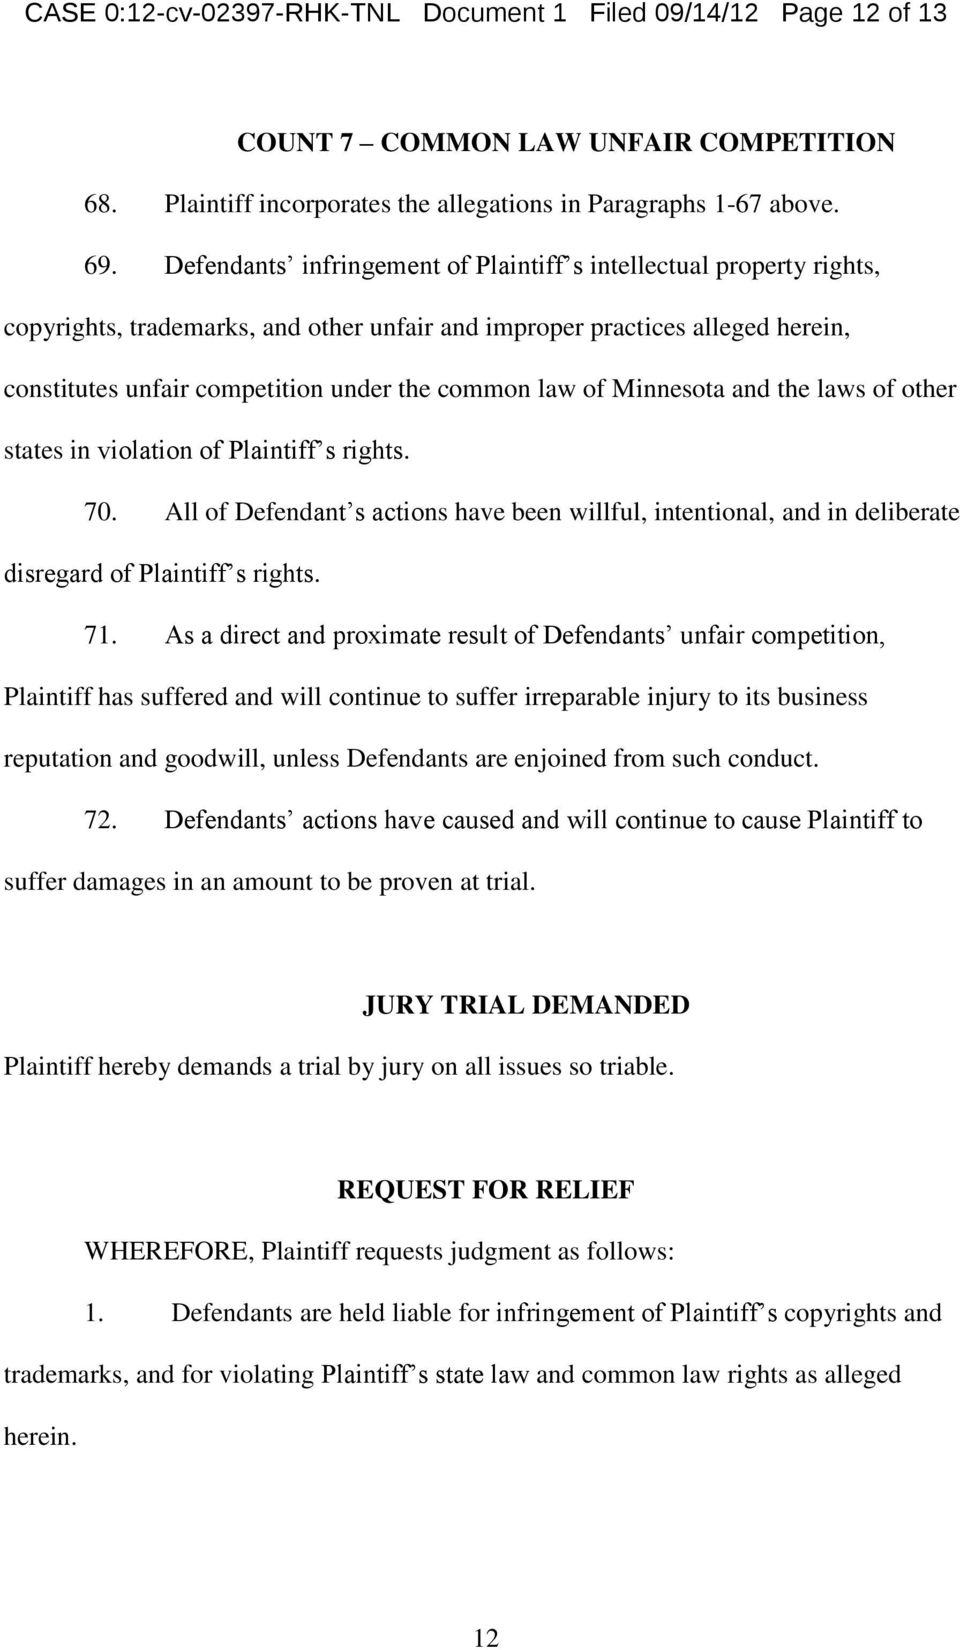 law of Minnesota and the laws of other states in violation of Plaintiff s rights. 70. All of Defendant s actions have been willful, intentional, and in deliberate disregard of Plaintiff s rights. 71.